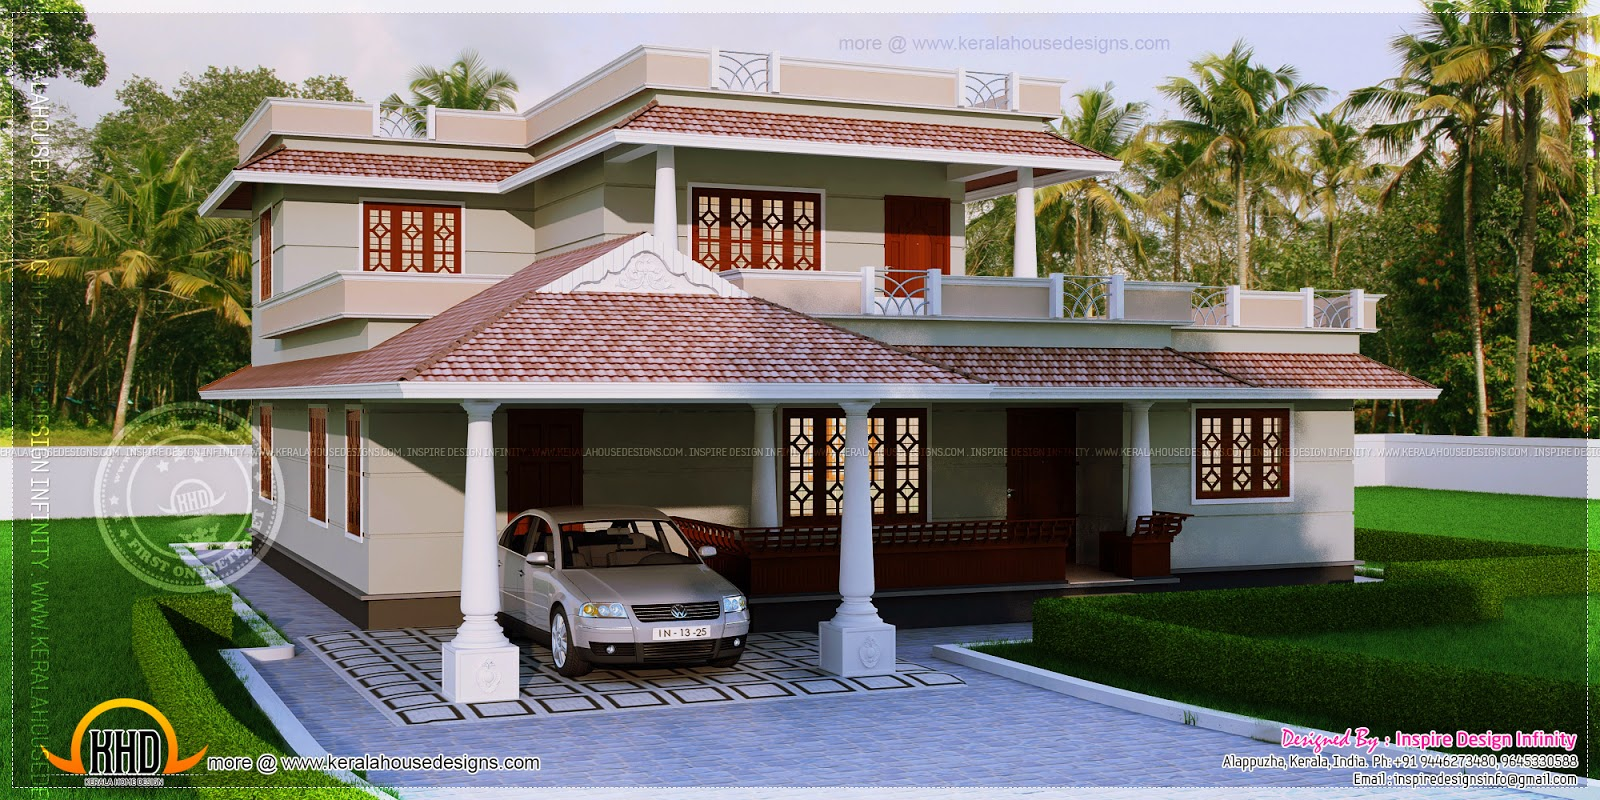 4 bedroom kerala style house in 300 square yards kerala for Kerala style home